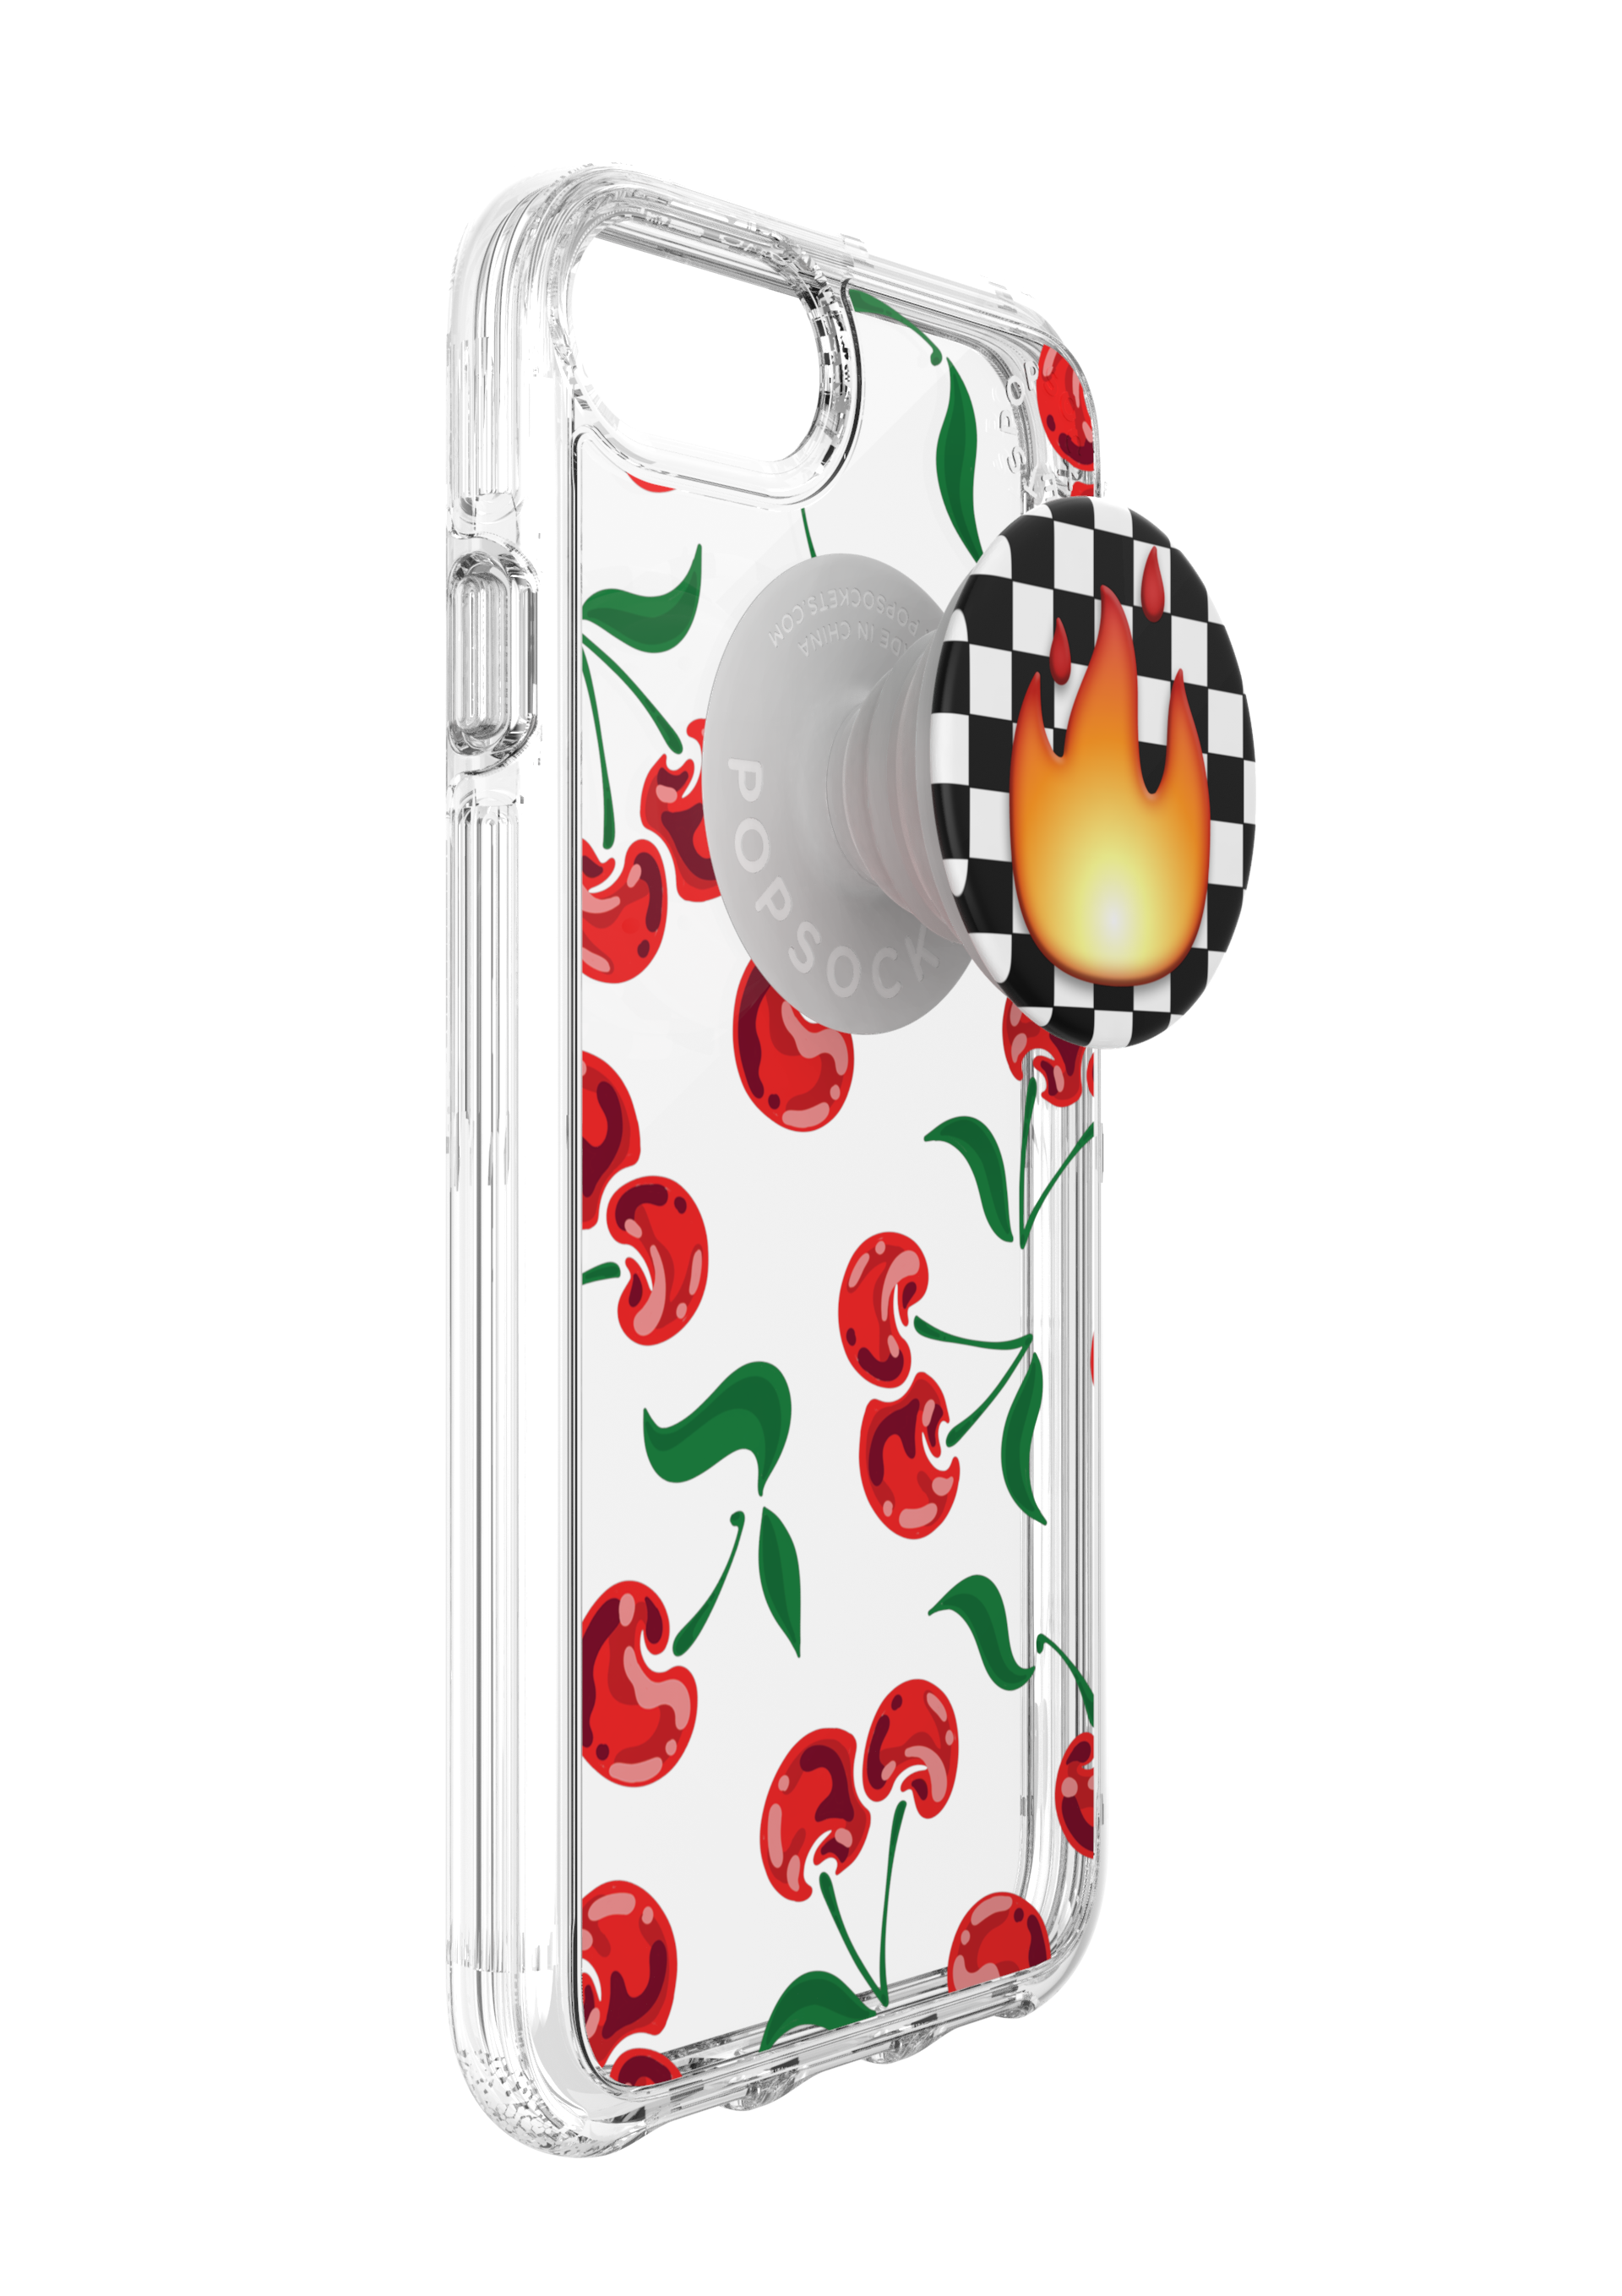 Slim with PopSocket 1.386.png